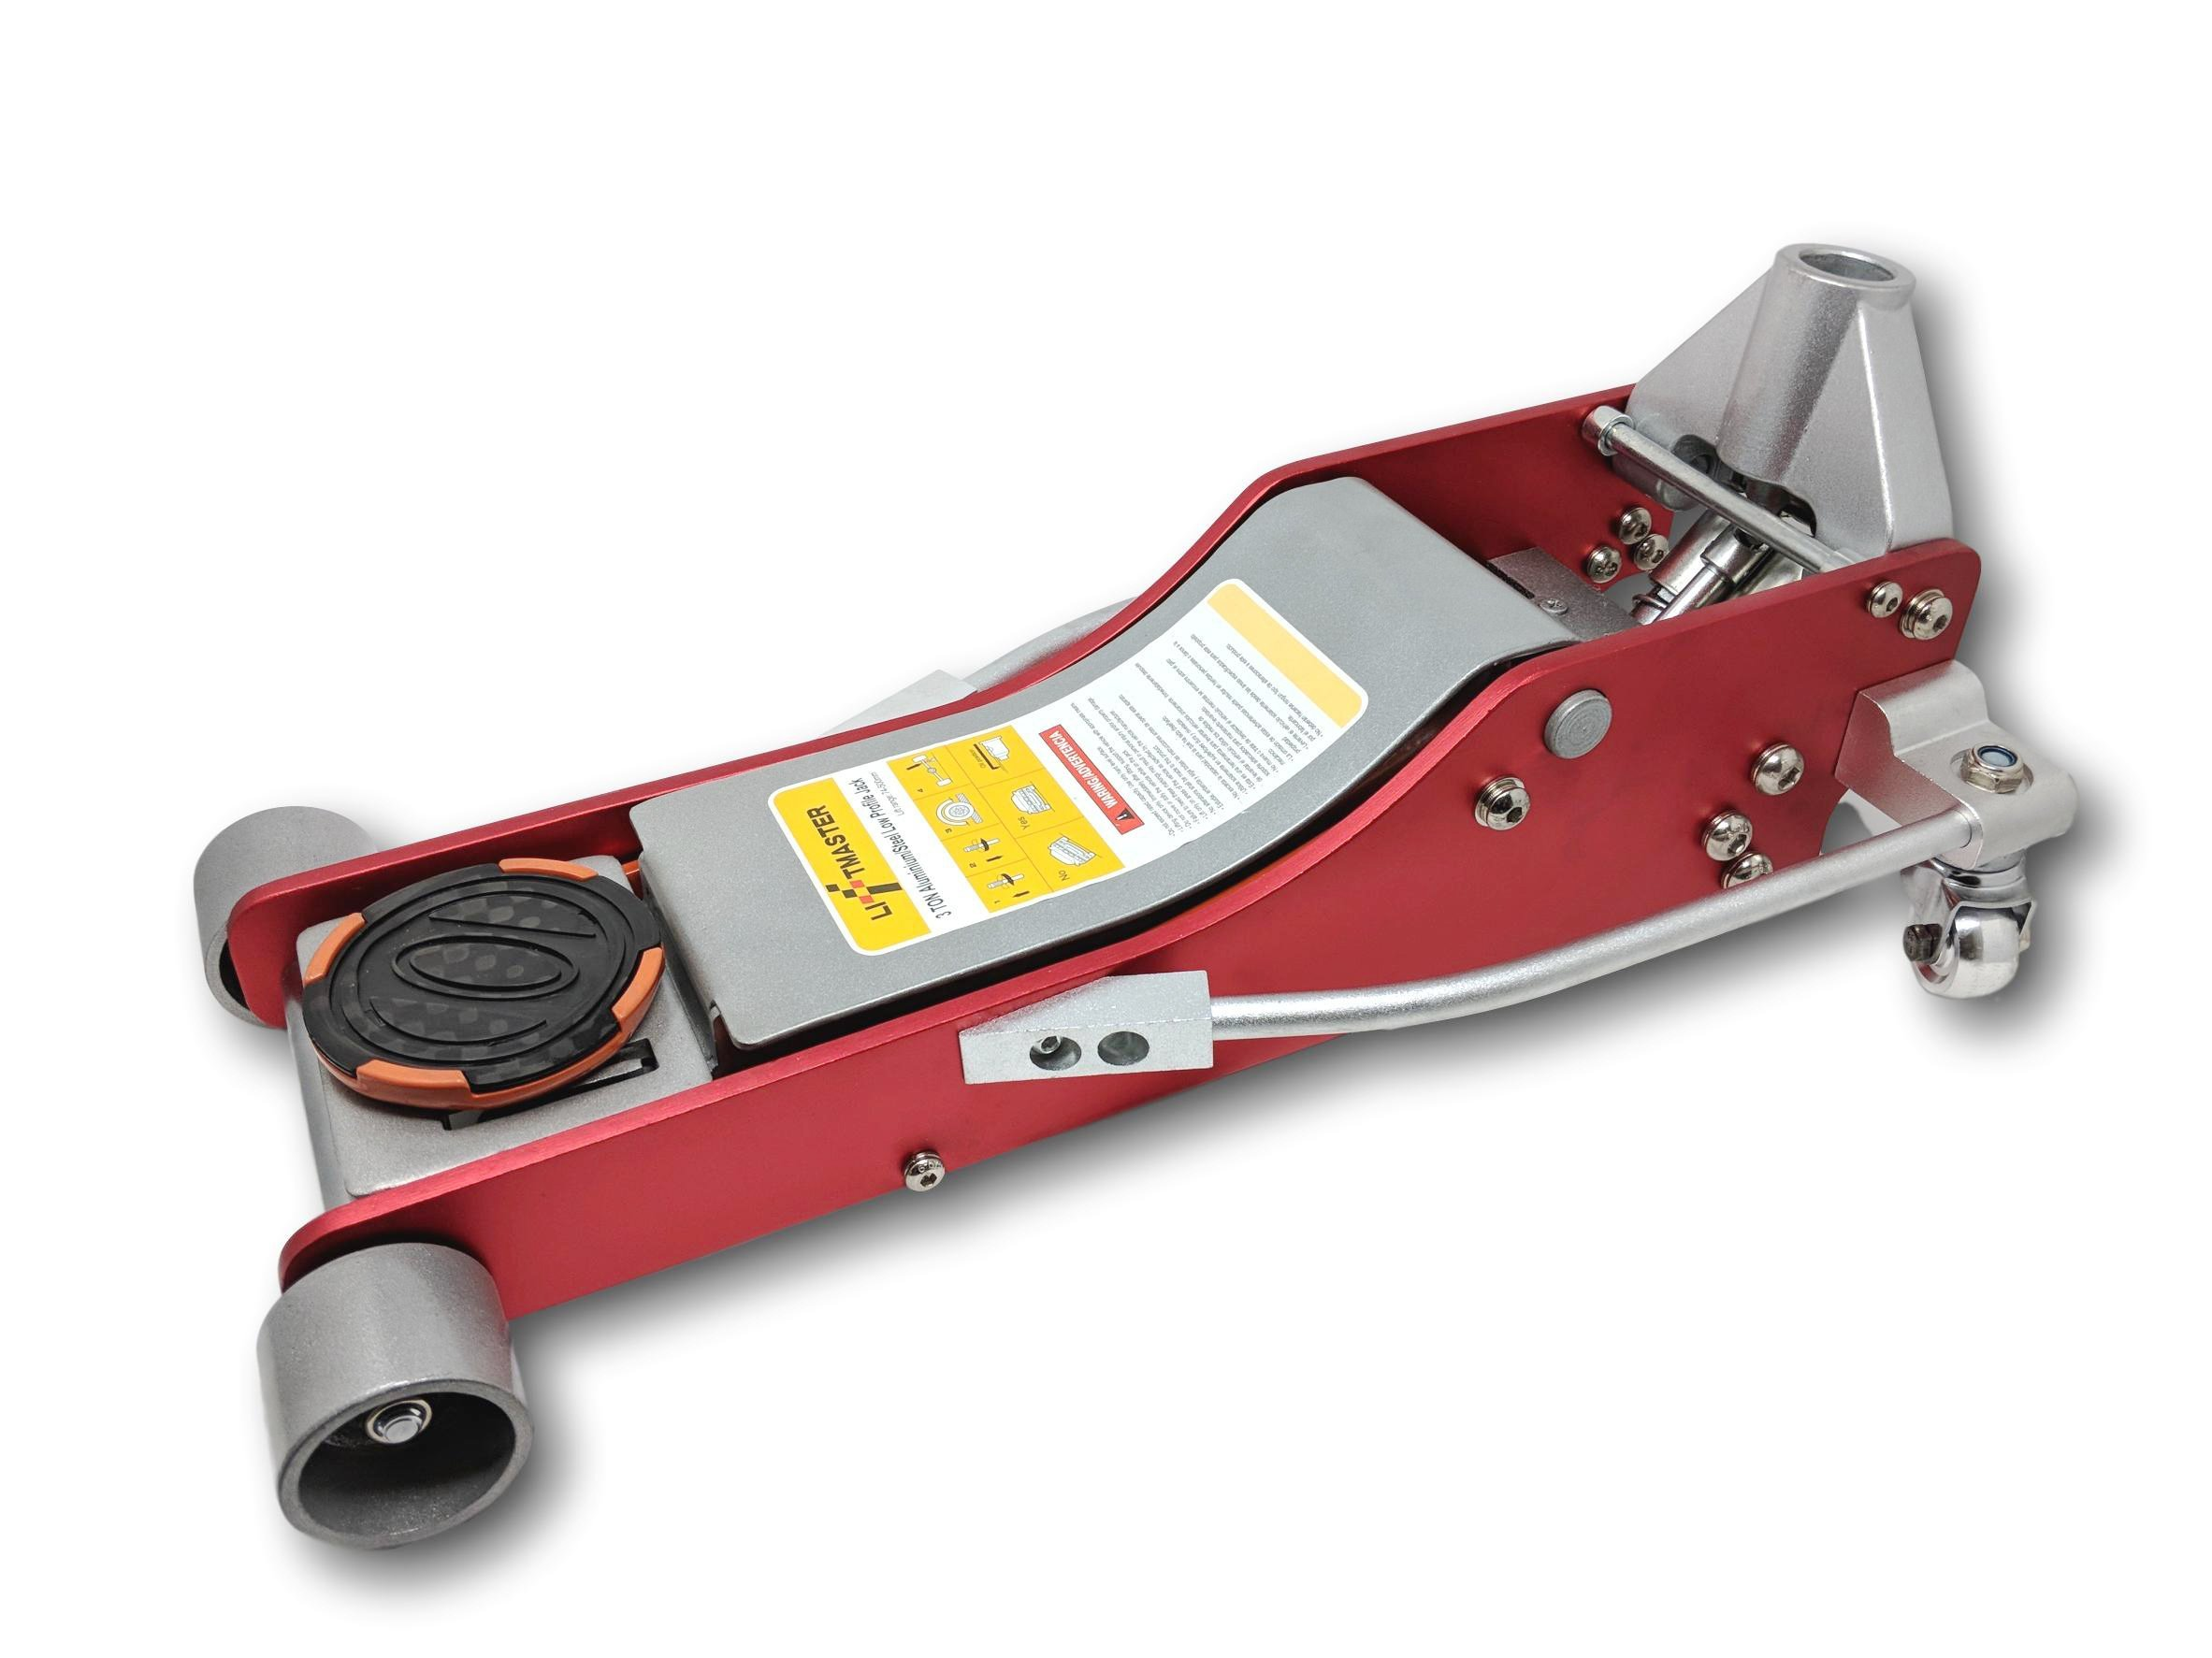 Liftmster Liftmaster 3 Ton Aluminum and Steel Low Profile High Lift Floor Jack (Red)